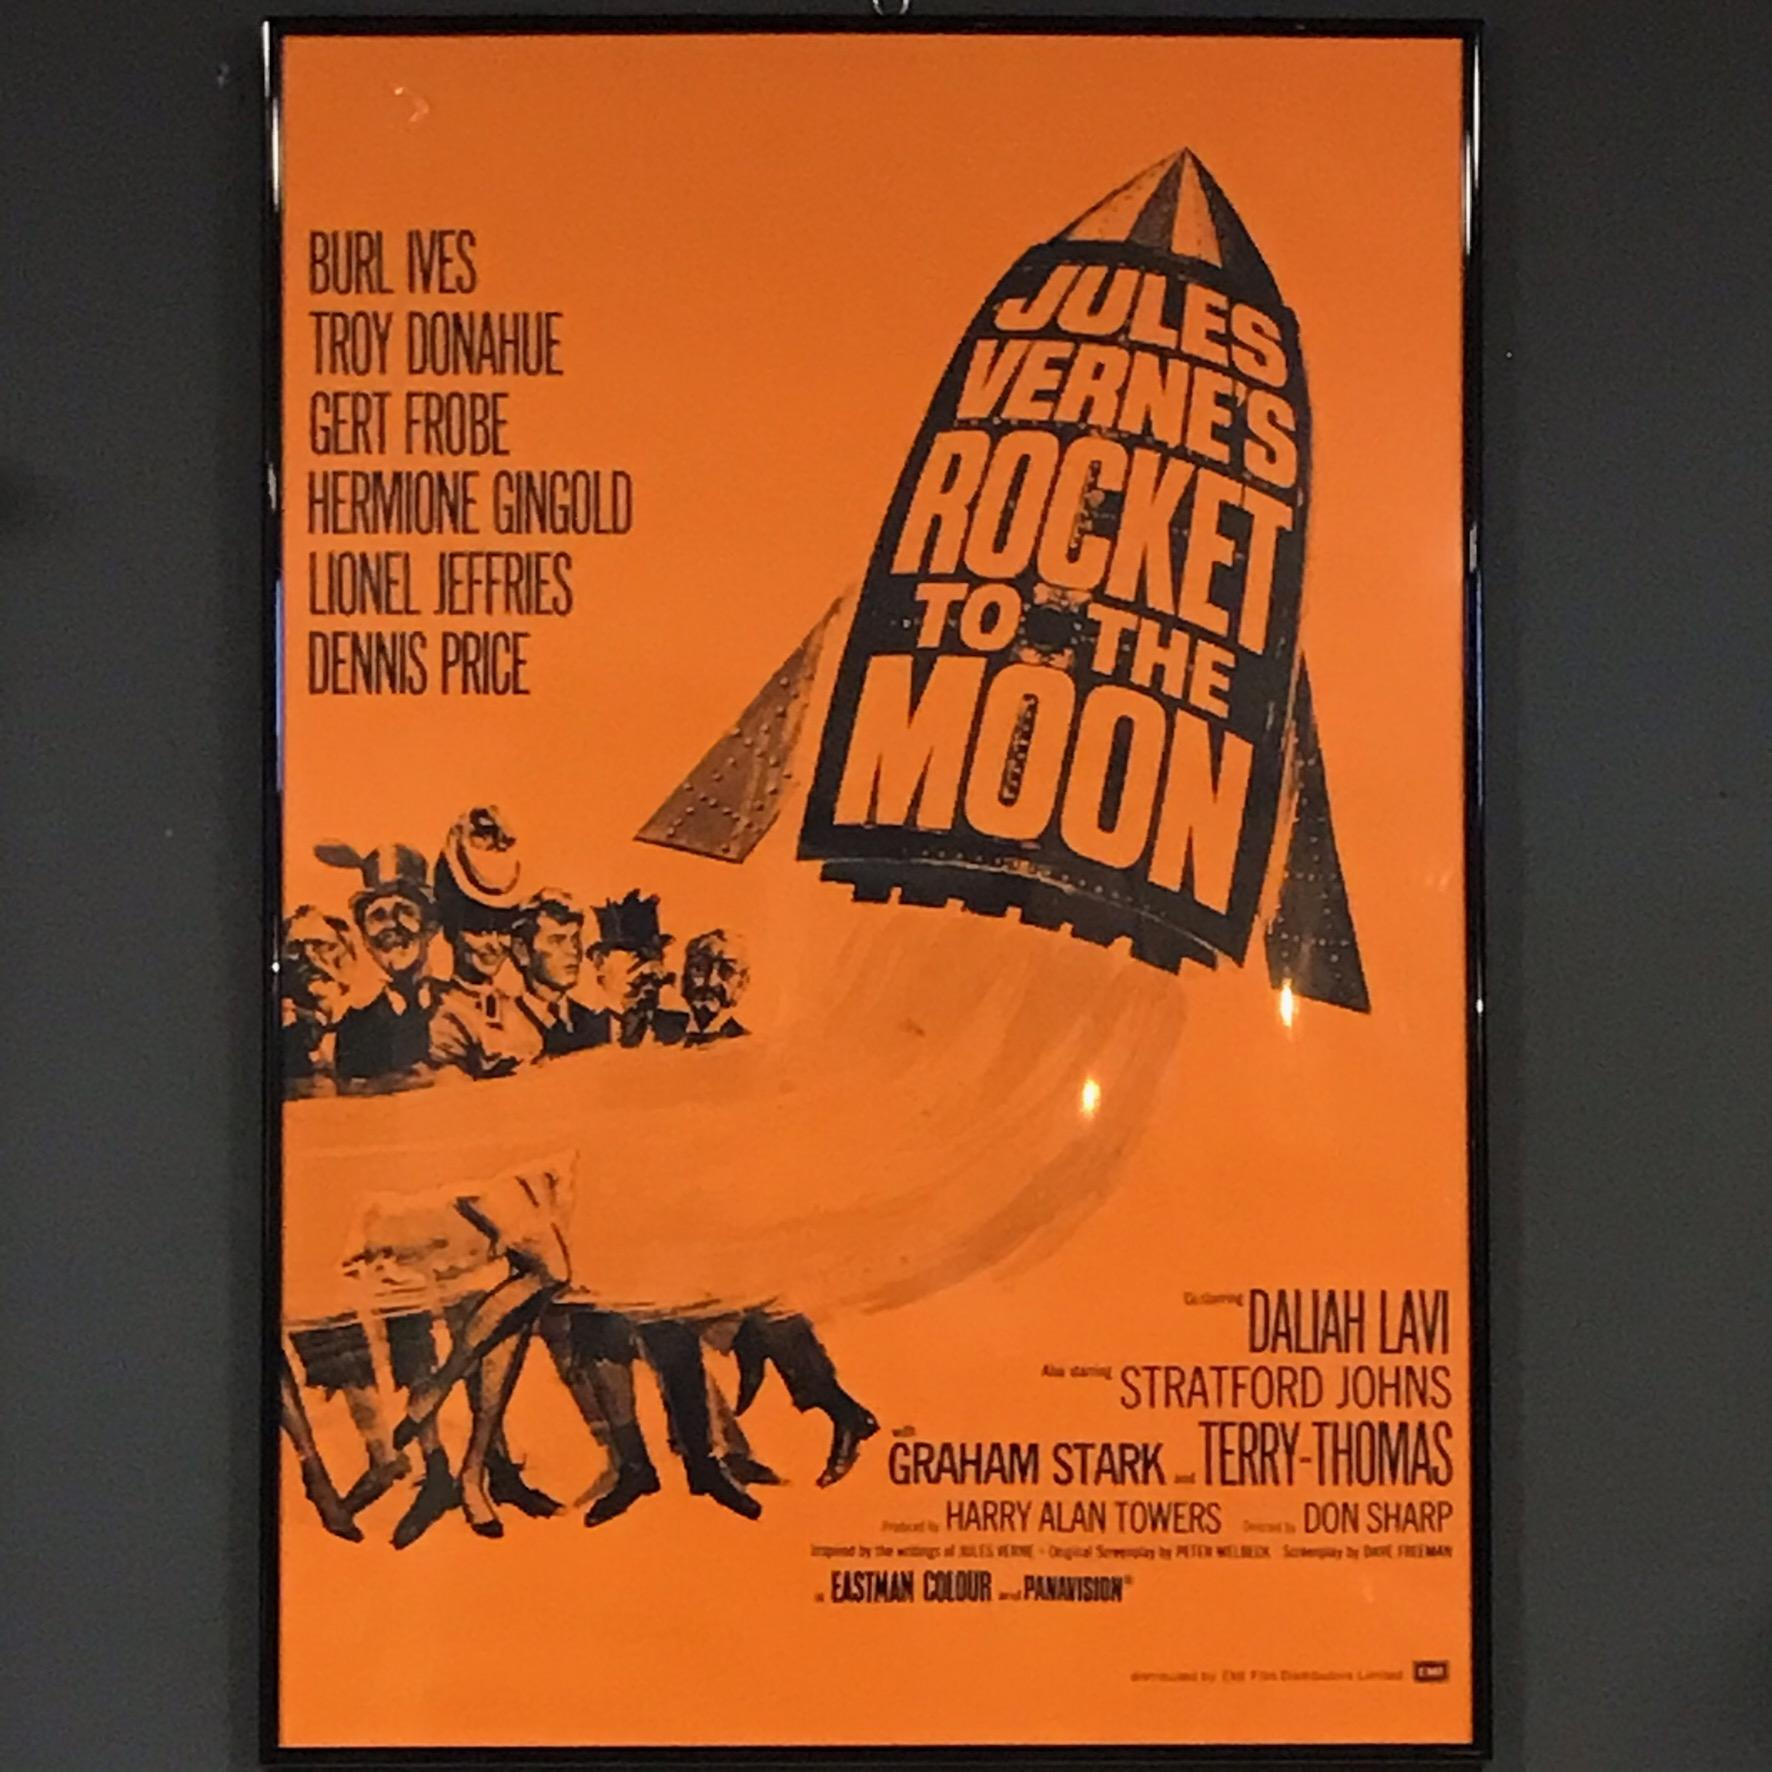 Rockets To The Moon: Jules Vernes Rocket To The Moon Original British Film